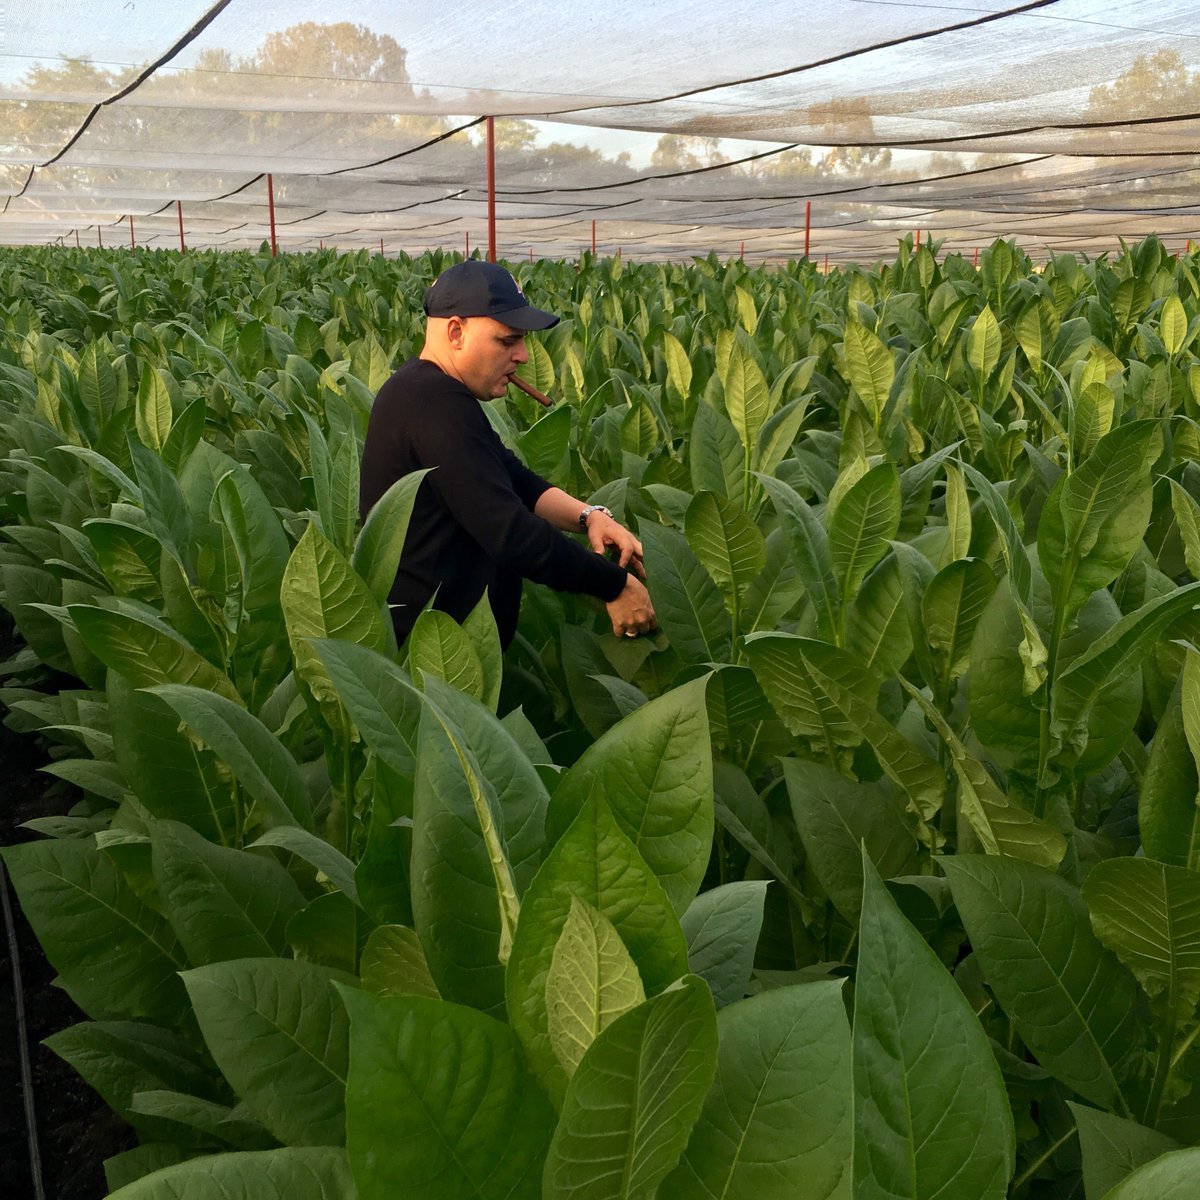 AJ Fernandez loves to be in the field at least three times a day. #AJFCigars #AJFernandez #cigarindustry #cigarlife https://t.co/5OSvJxR5FL